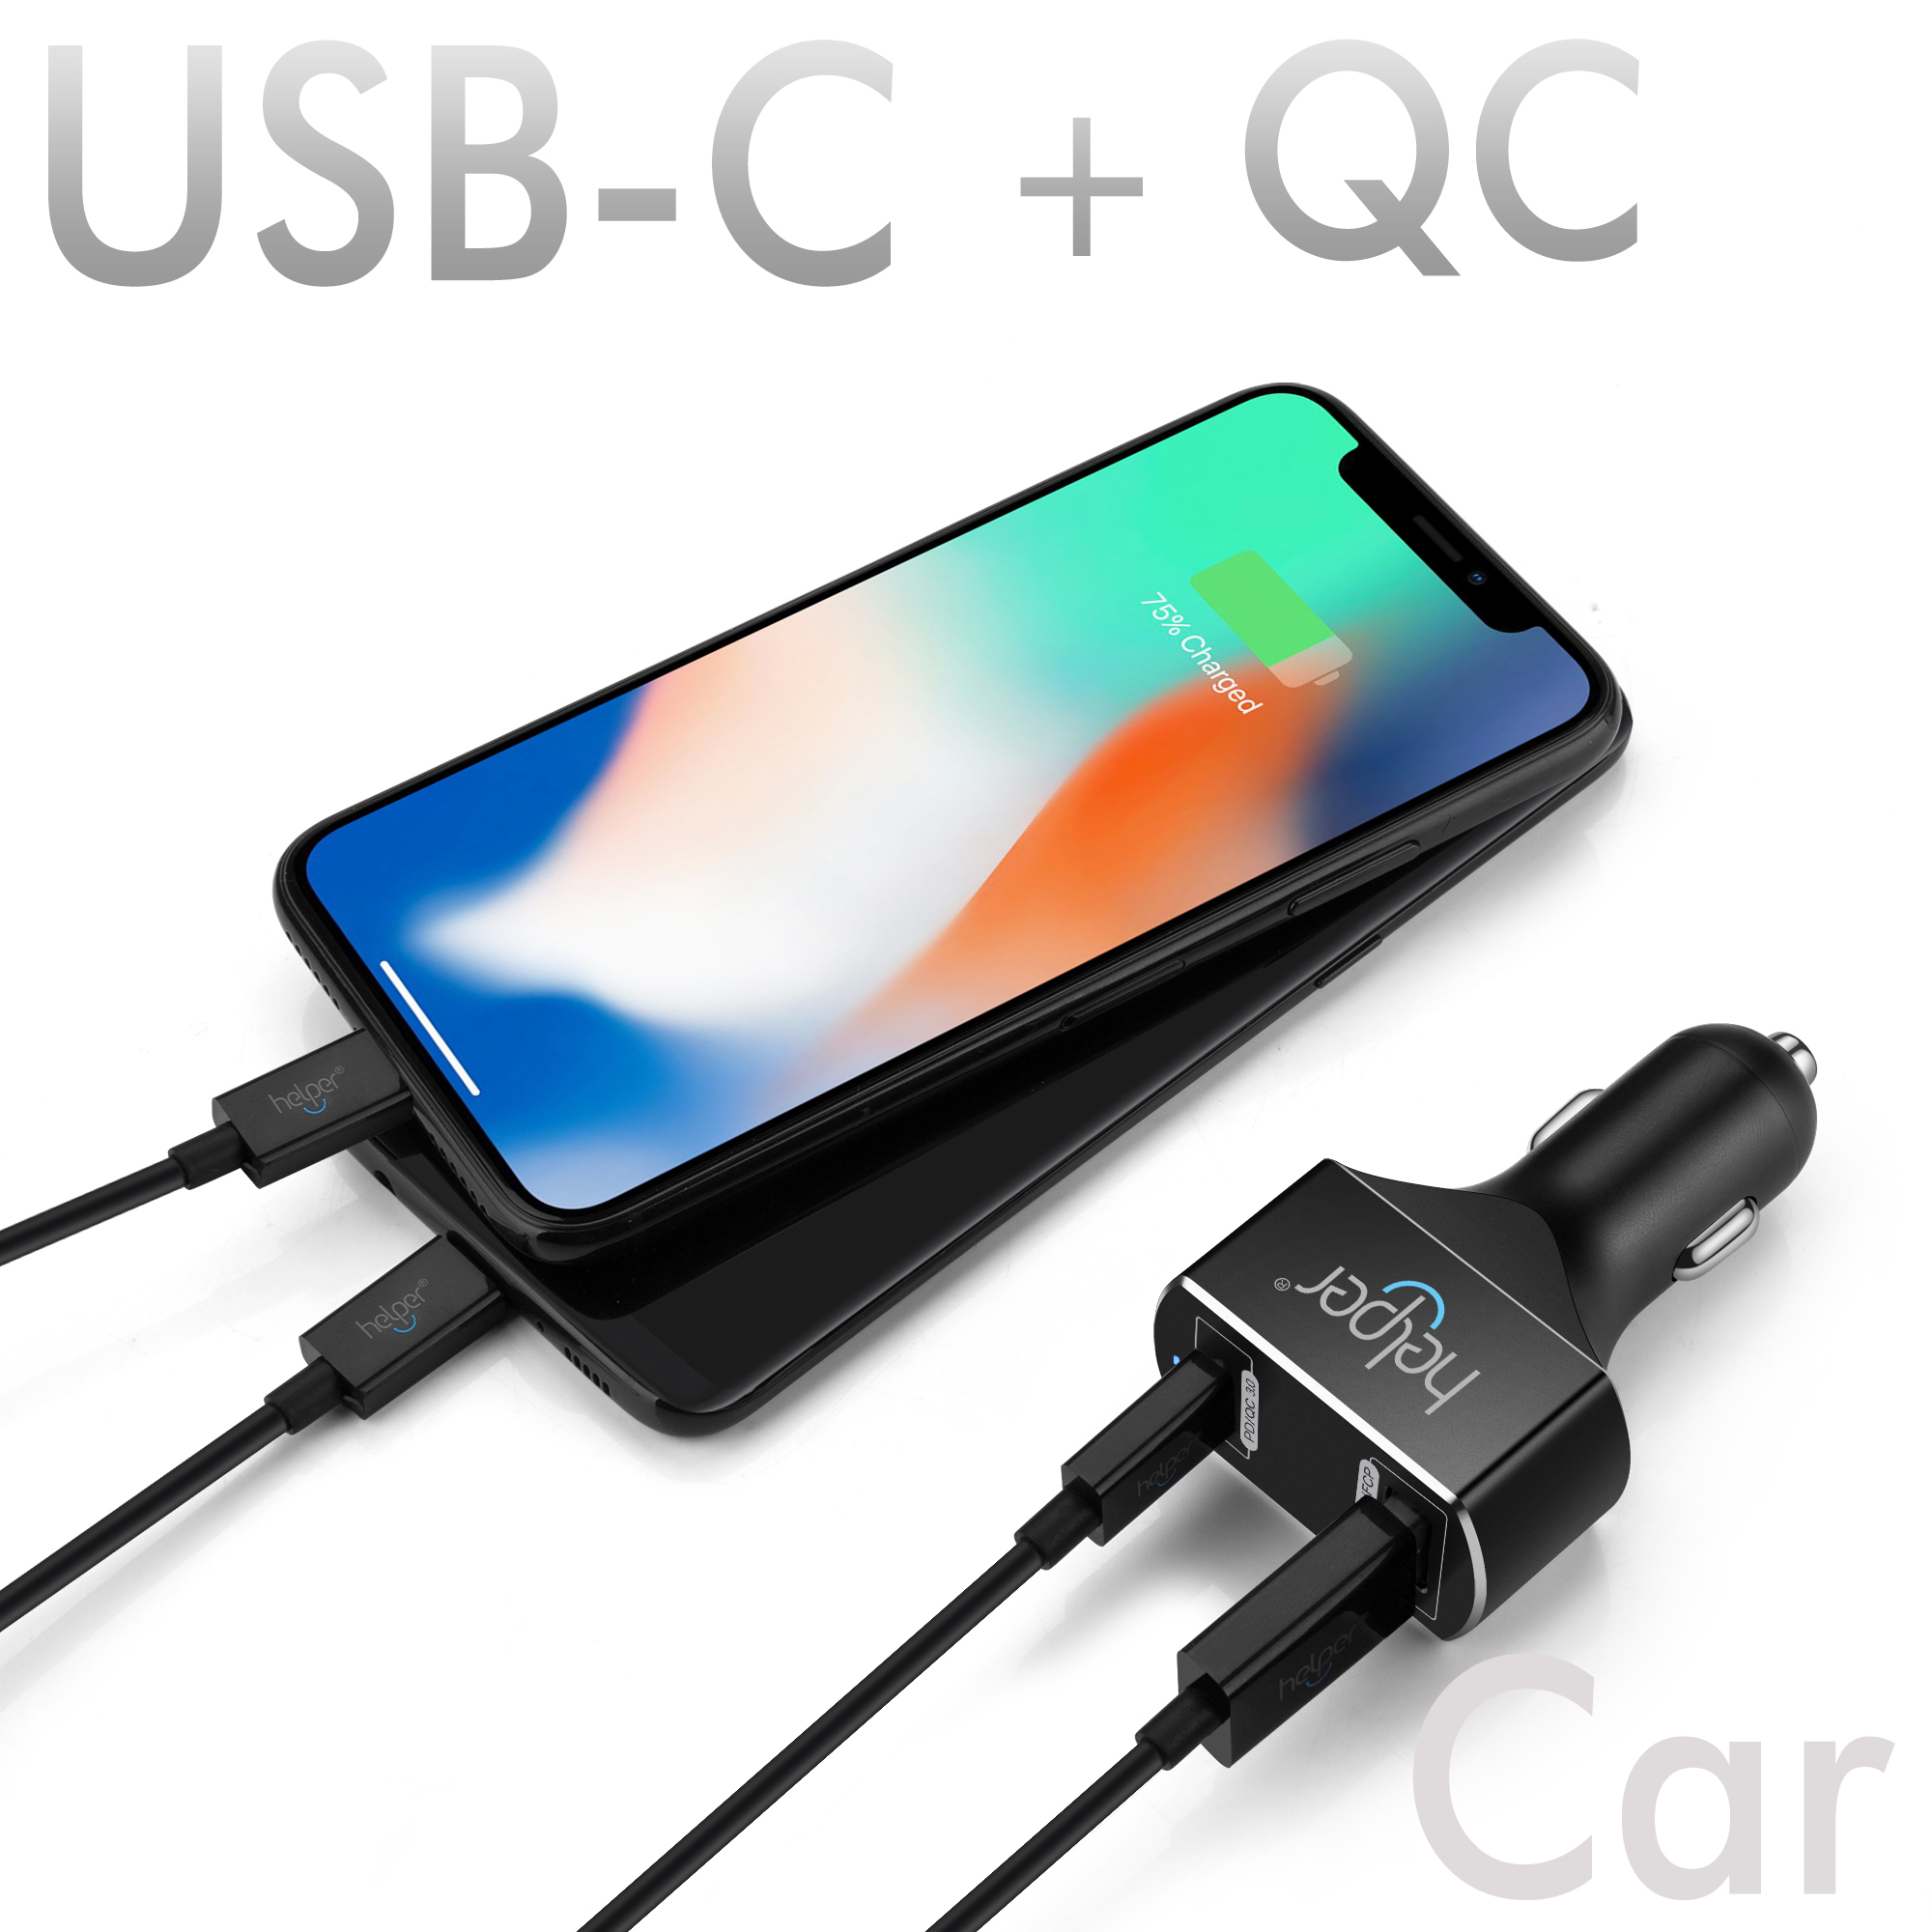 5V 20V USB C PD Car Charger with Power Delivery 45W Quick Charge 3.0 USB-C 18W QC3.0 USB Car Charger Adapter for Laptop Notebook